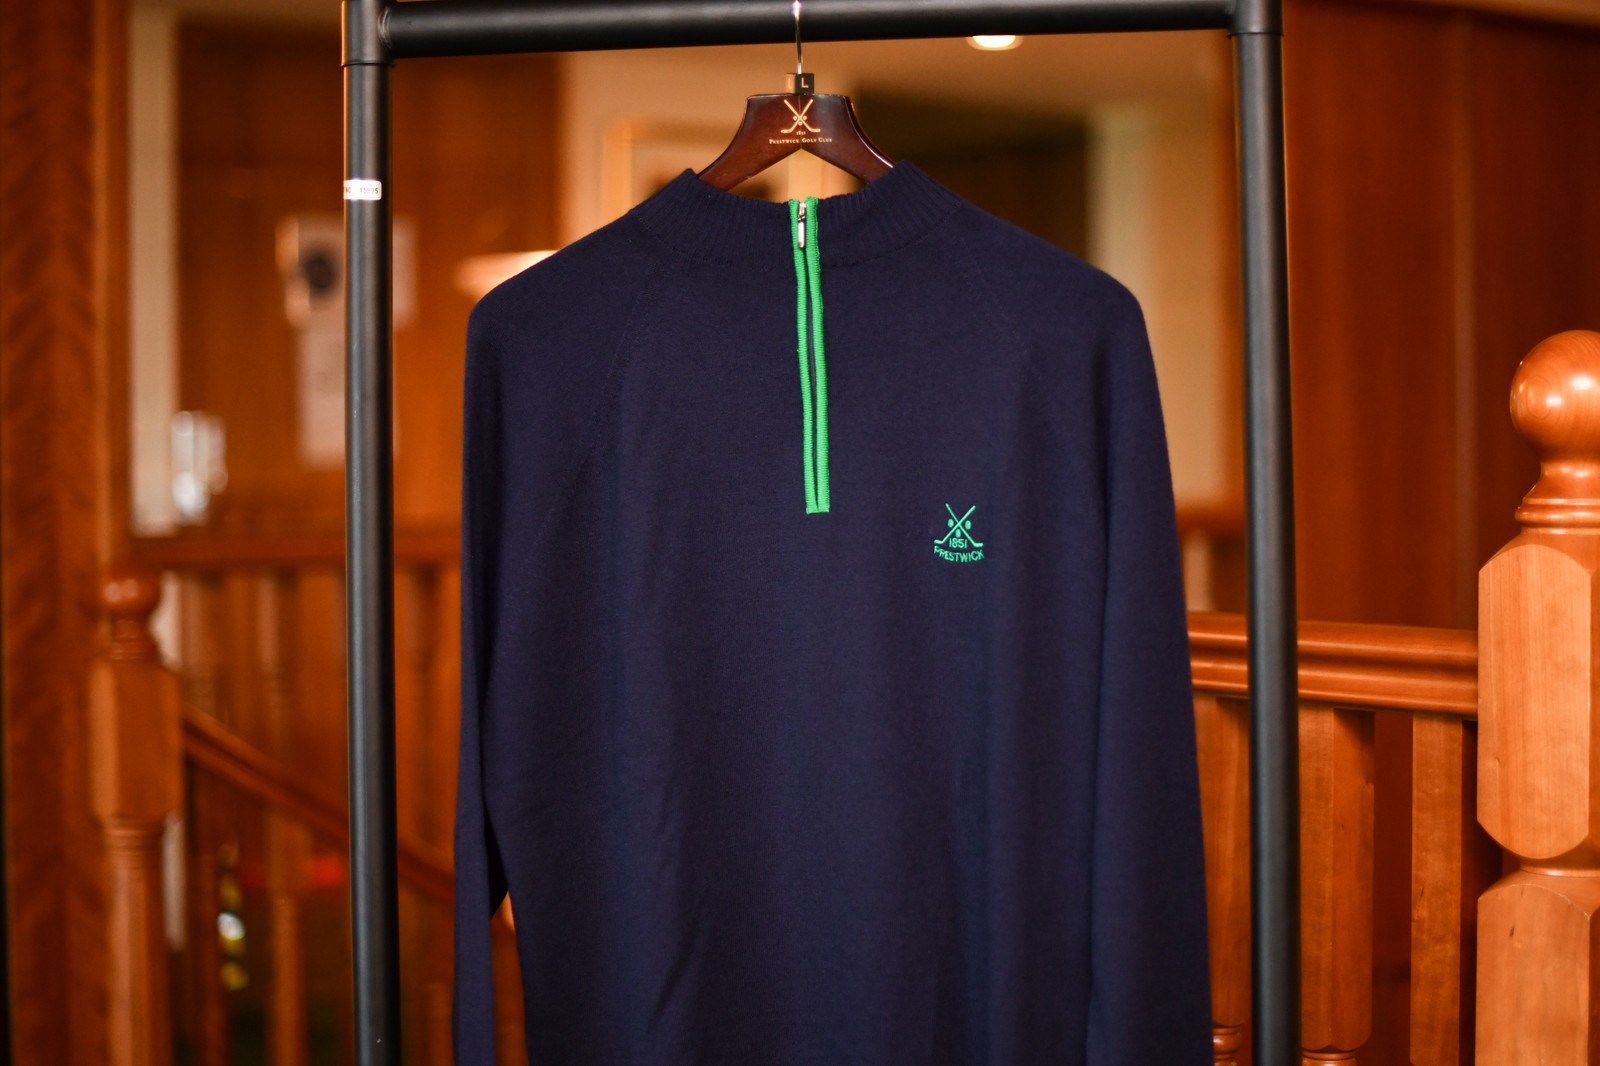 Glenbrae Merino Contrast Zip Neck - Navy/Green (40% OFF)